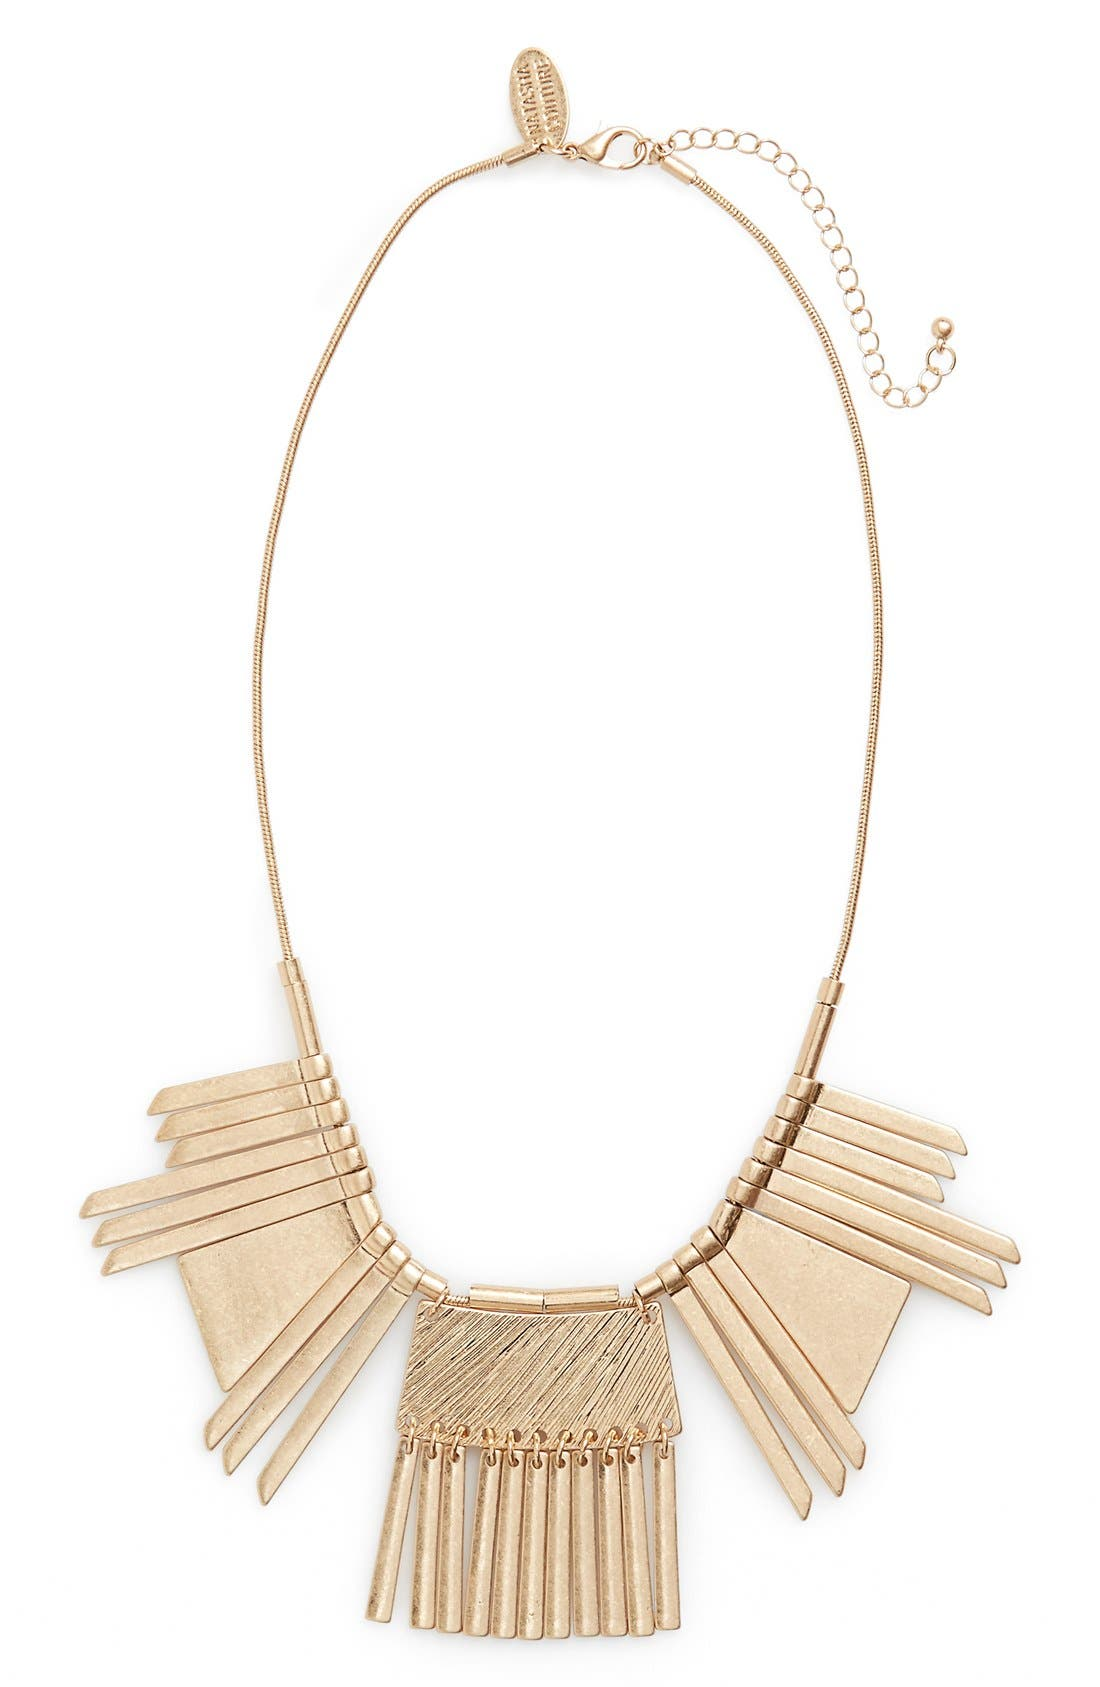 Couture Statement Necklace,                             Main thumbnail 1, color,                             Gold